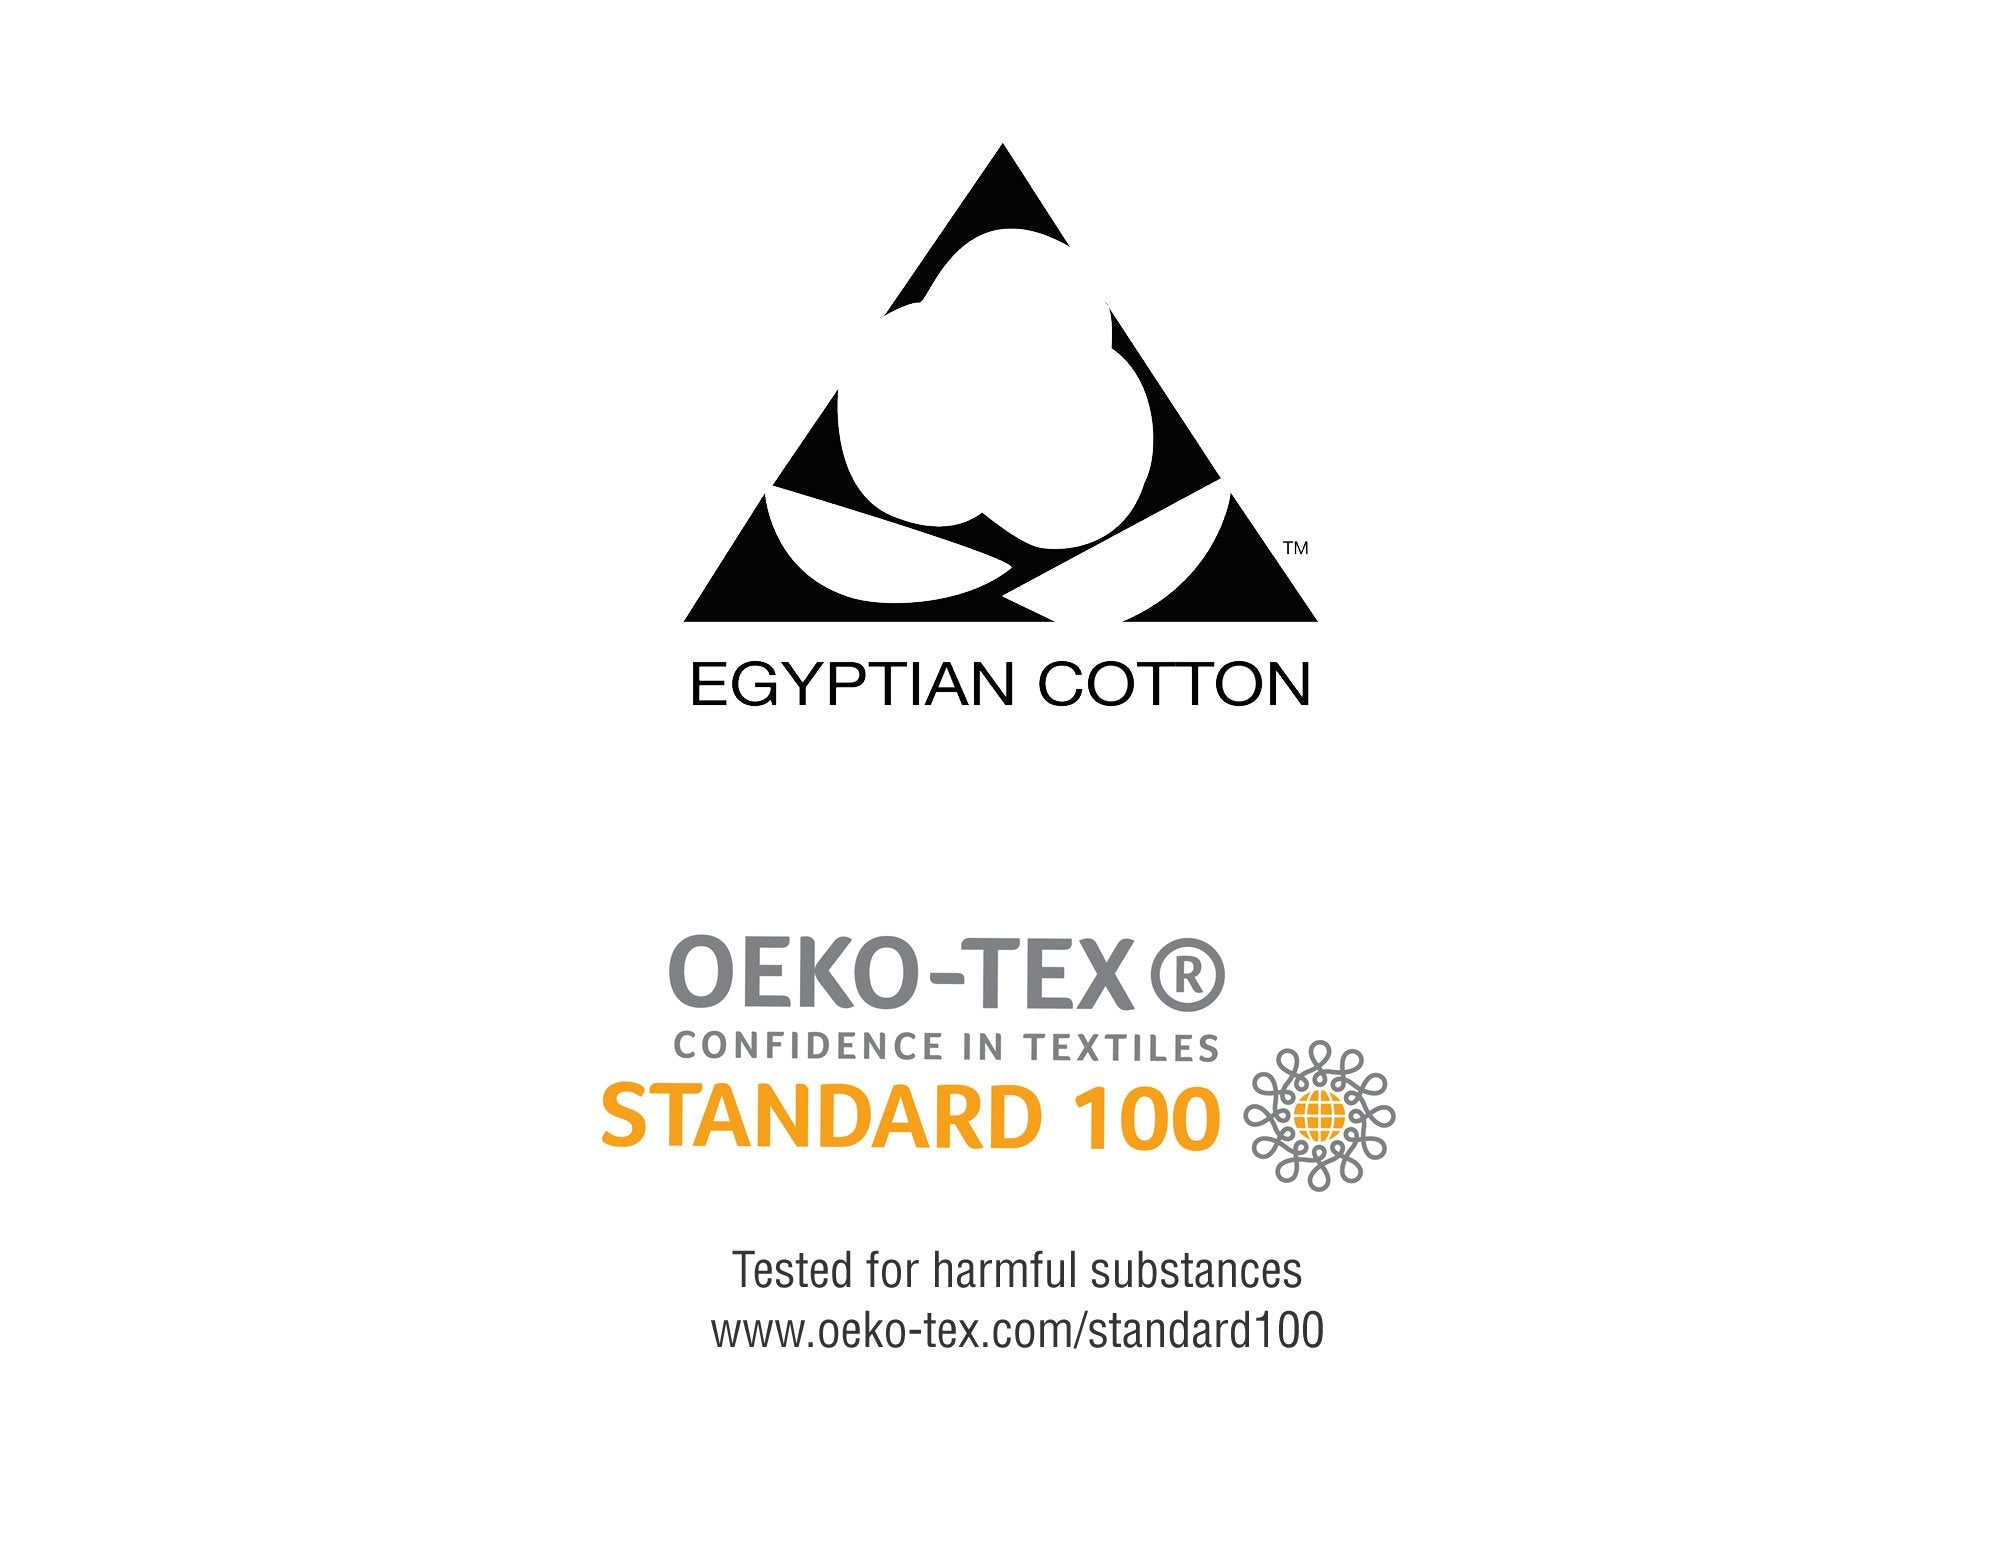 Bed linen certifications | scooms